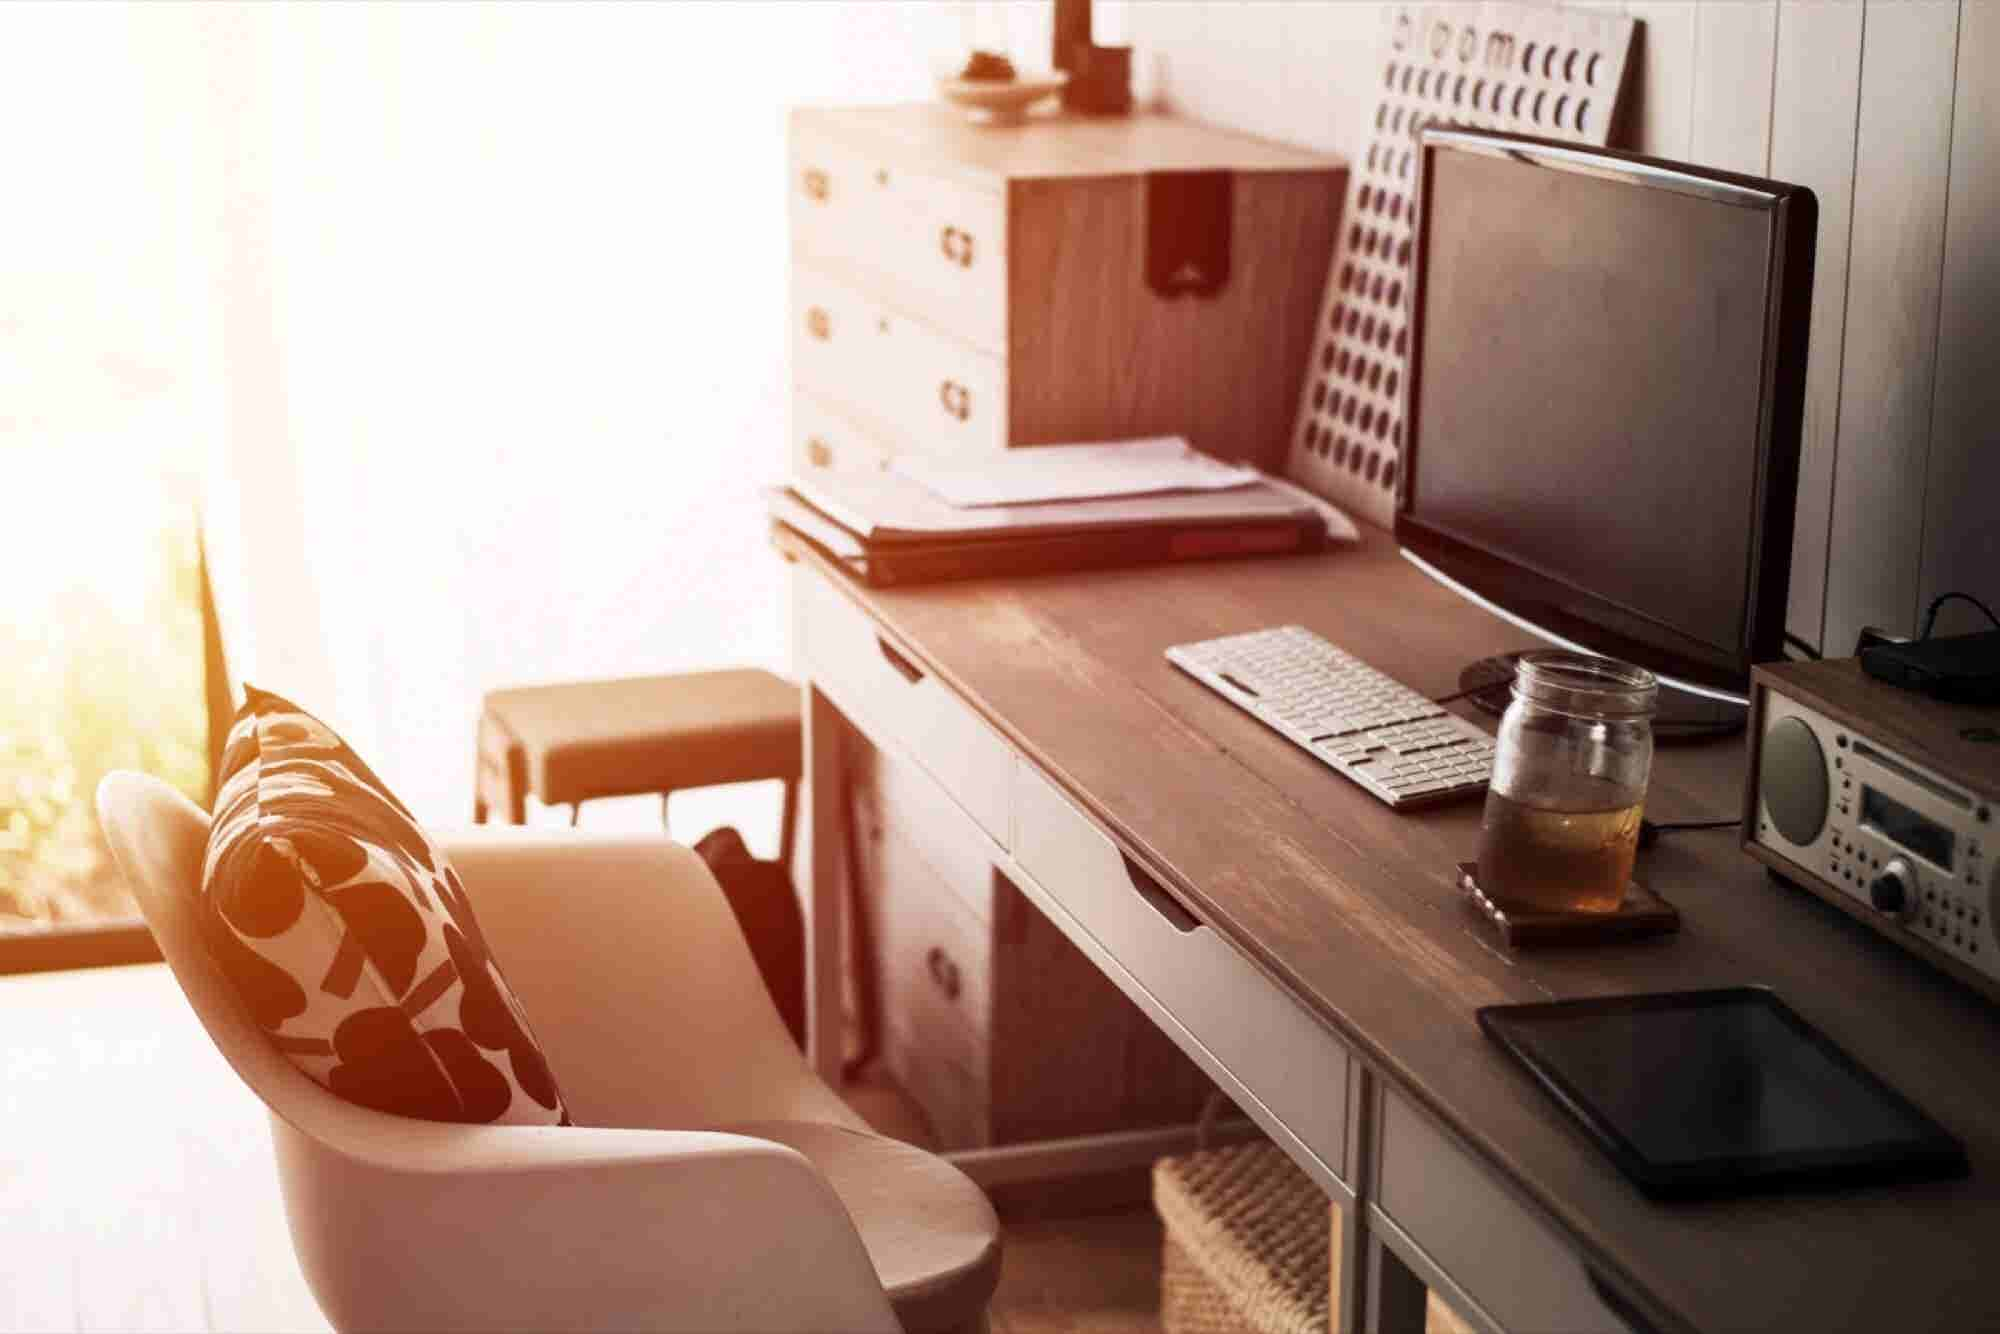 4 Reasons Why More Women Should Join a Coworking Space